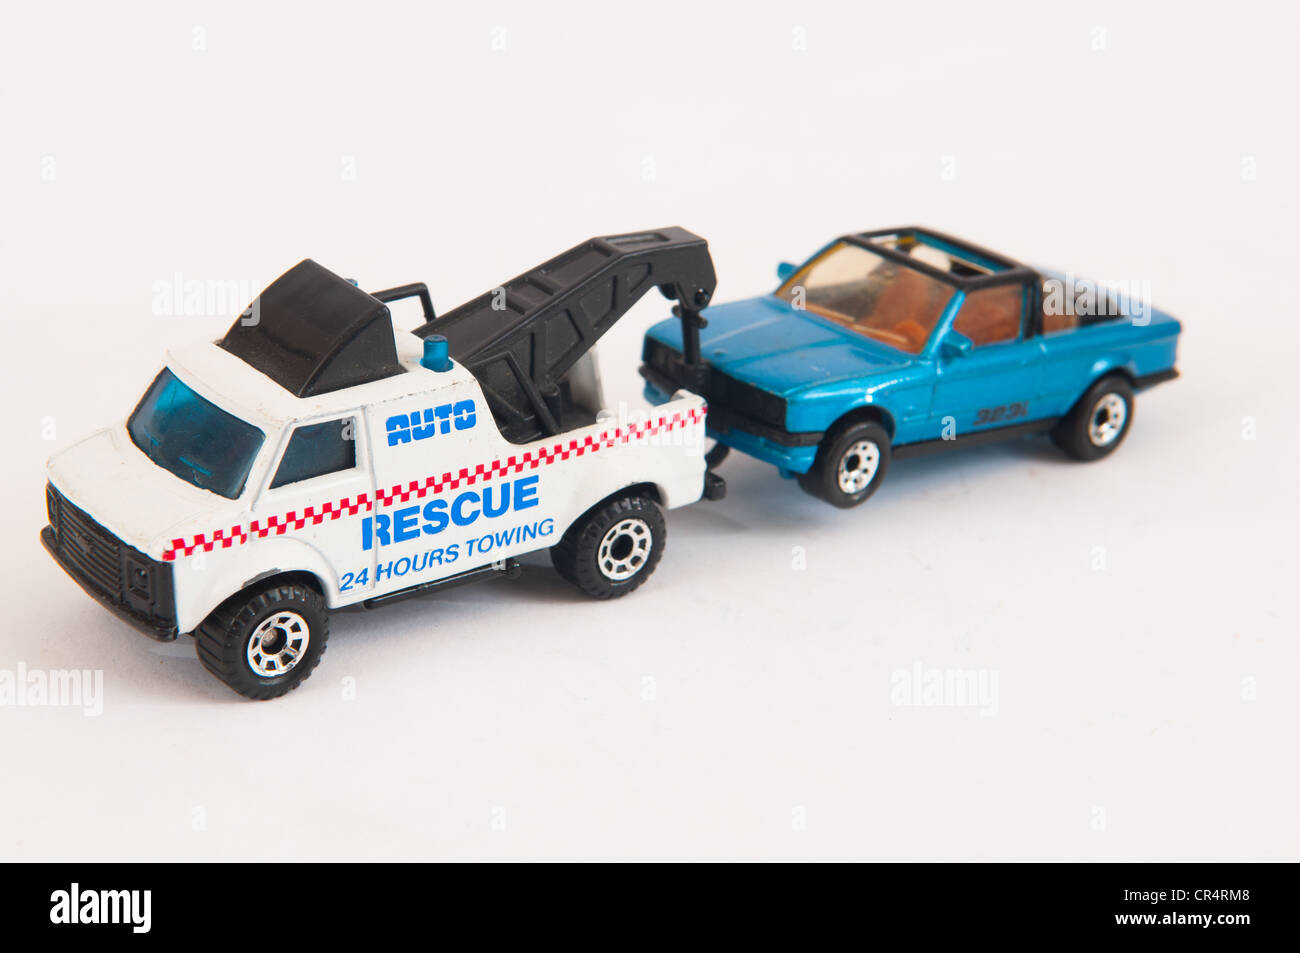 Child's toy rescue truck and car - Stock Image